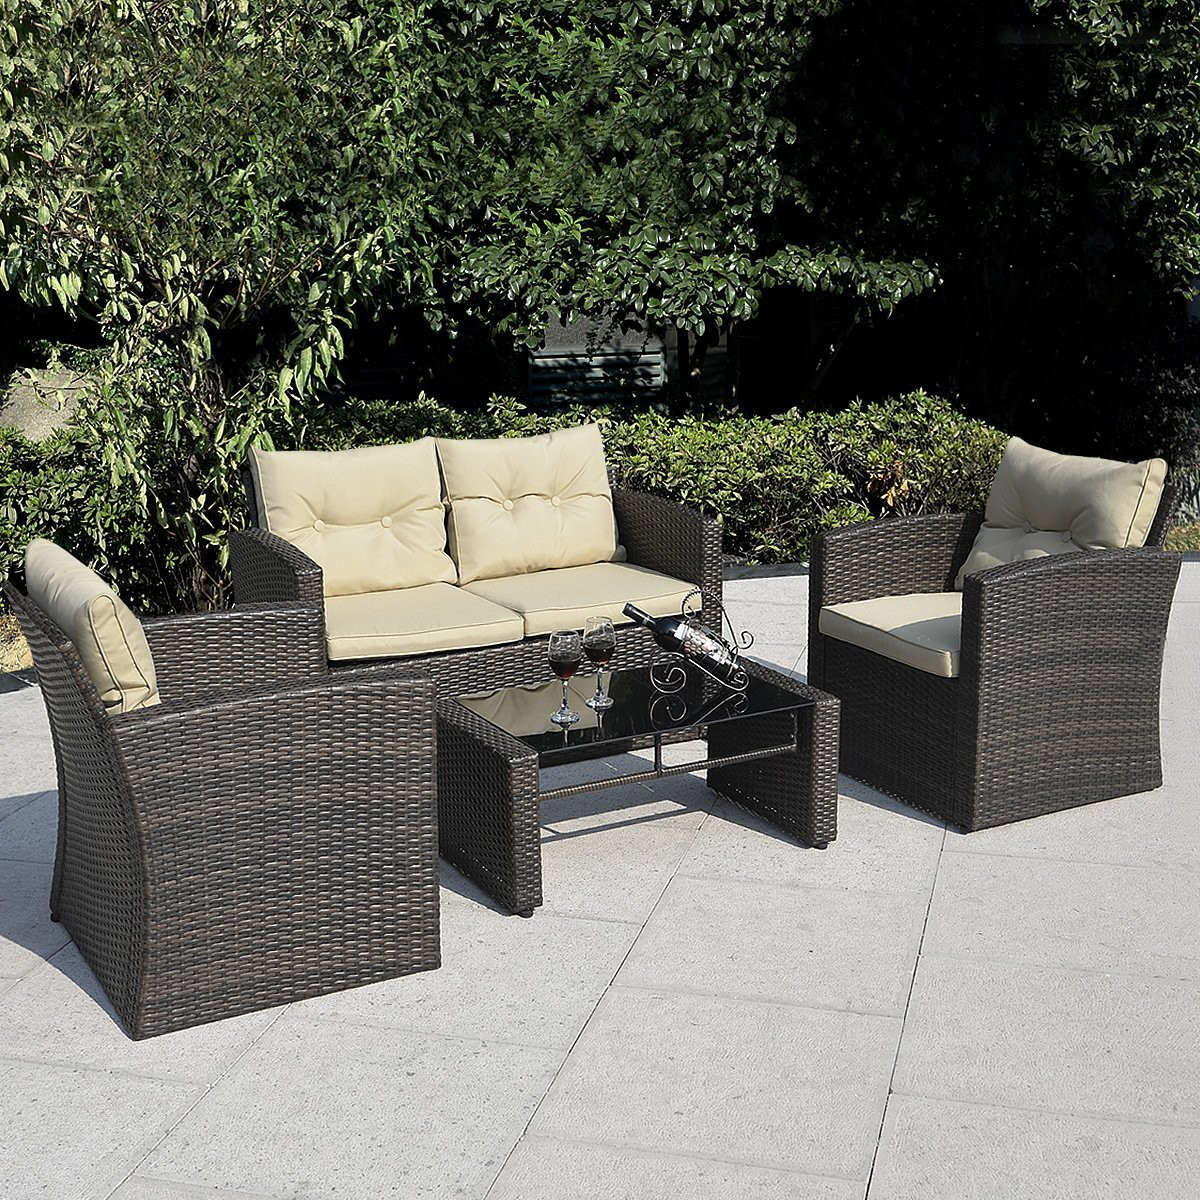 patio couch set  giantex pc wicker sofa outdoor patio furniture set x